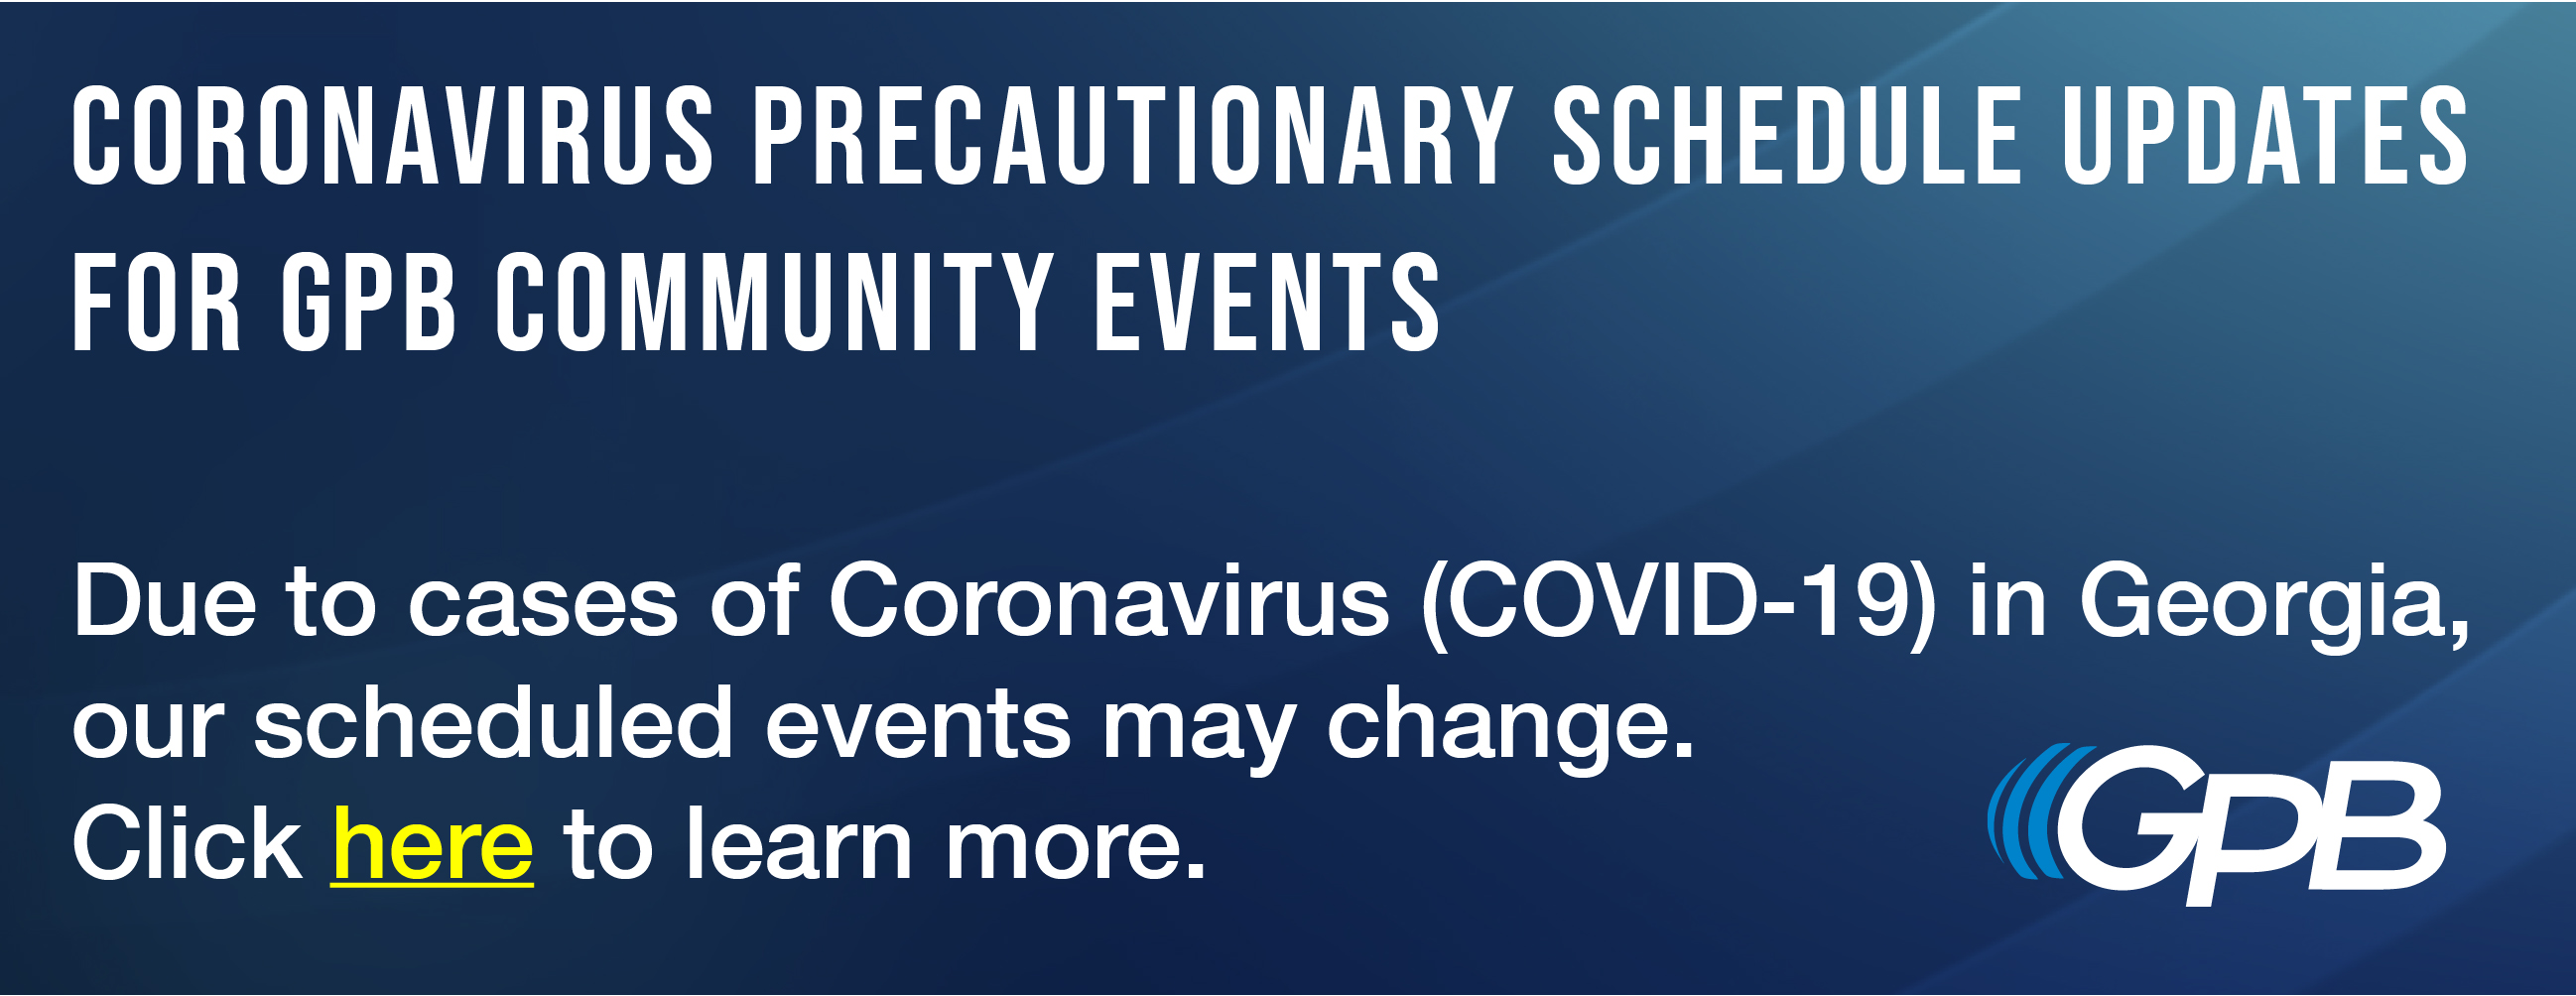 Coronavirus Precautionary Schedule Updates for GPB Community Events: Due to cases of Coronavirus (COVID-19) in Georgia, our scheduled events may change. Click here to learn more.